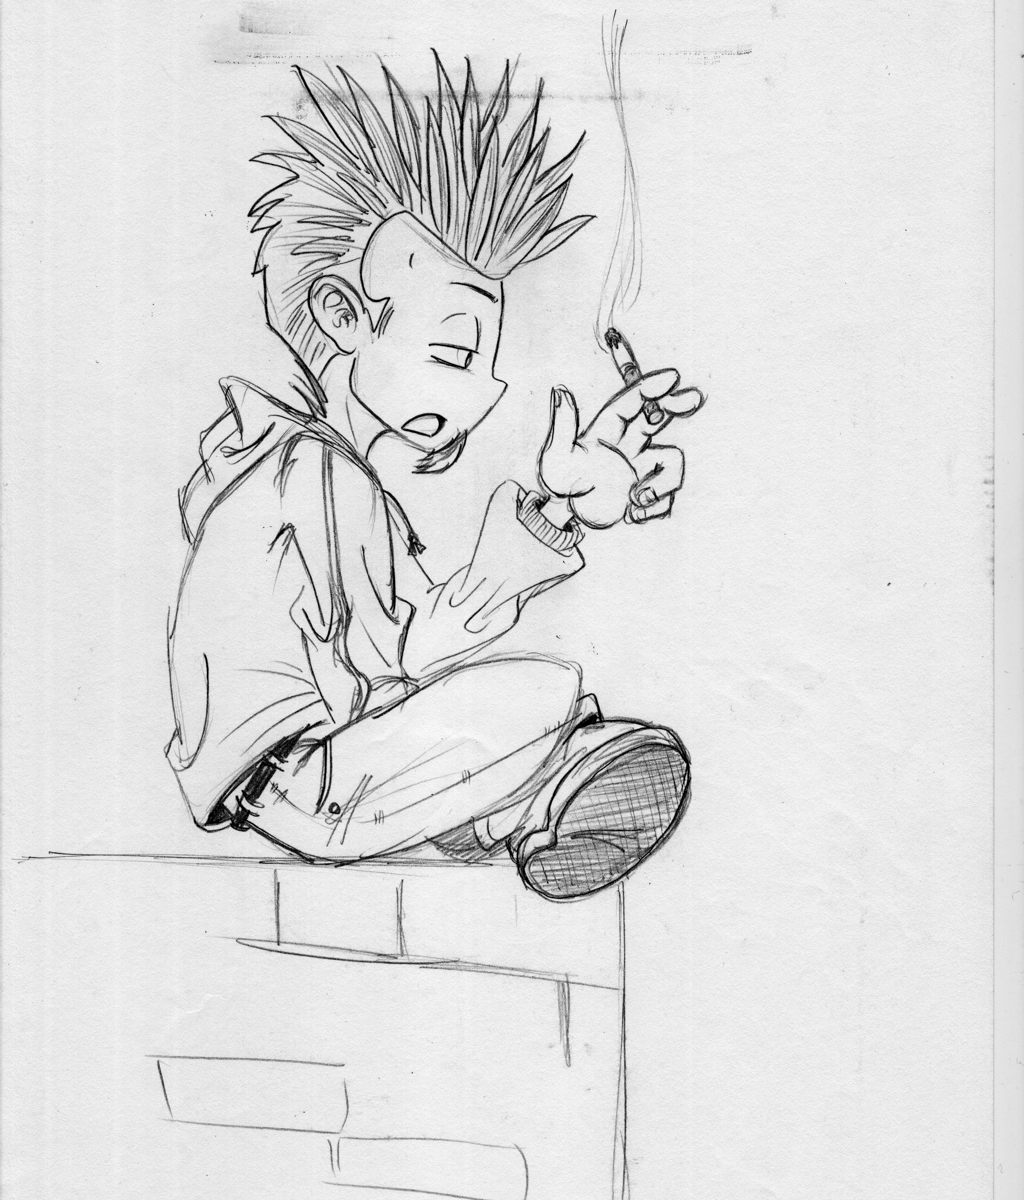 illustration illustrateur Jean-Baptiste MUS Toulon croquis dessin 2001 04